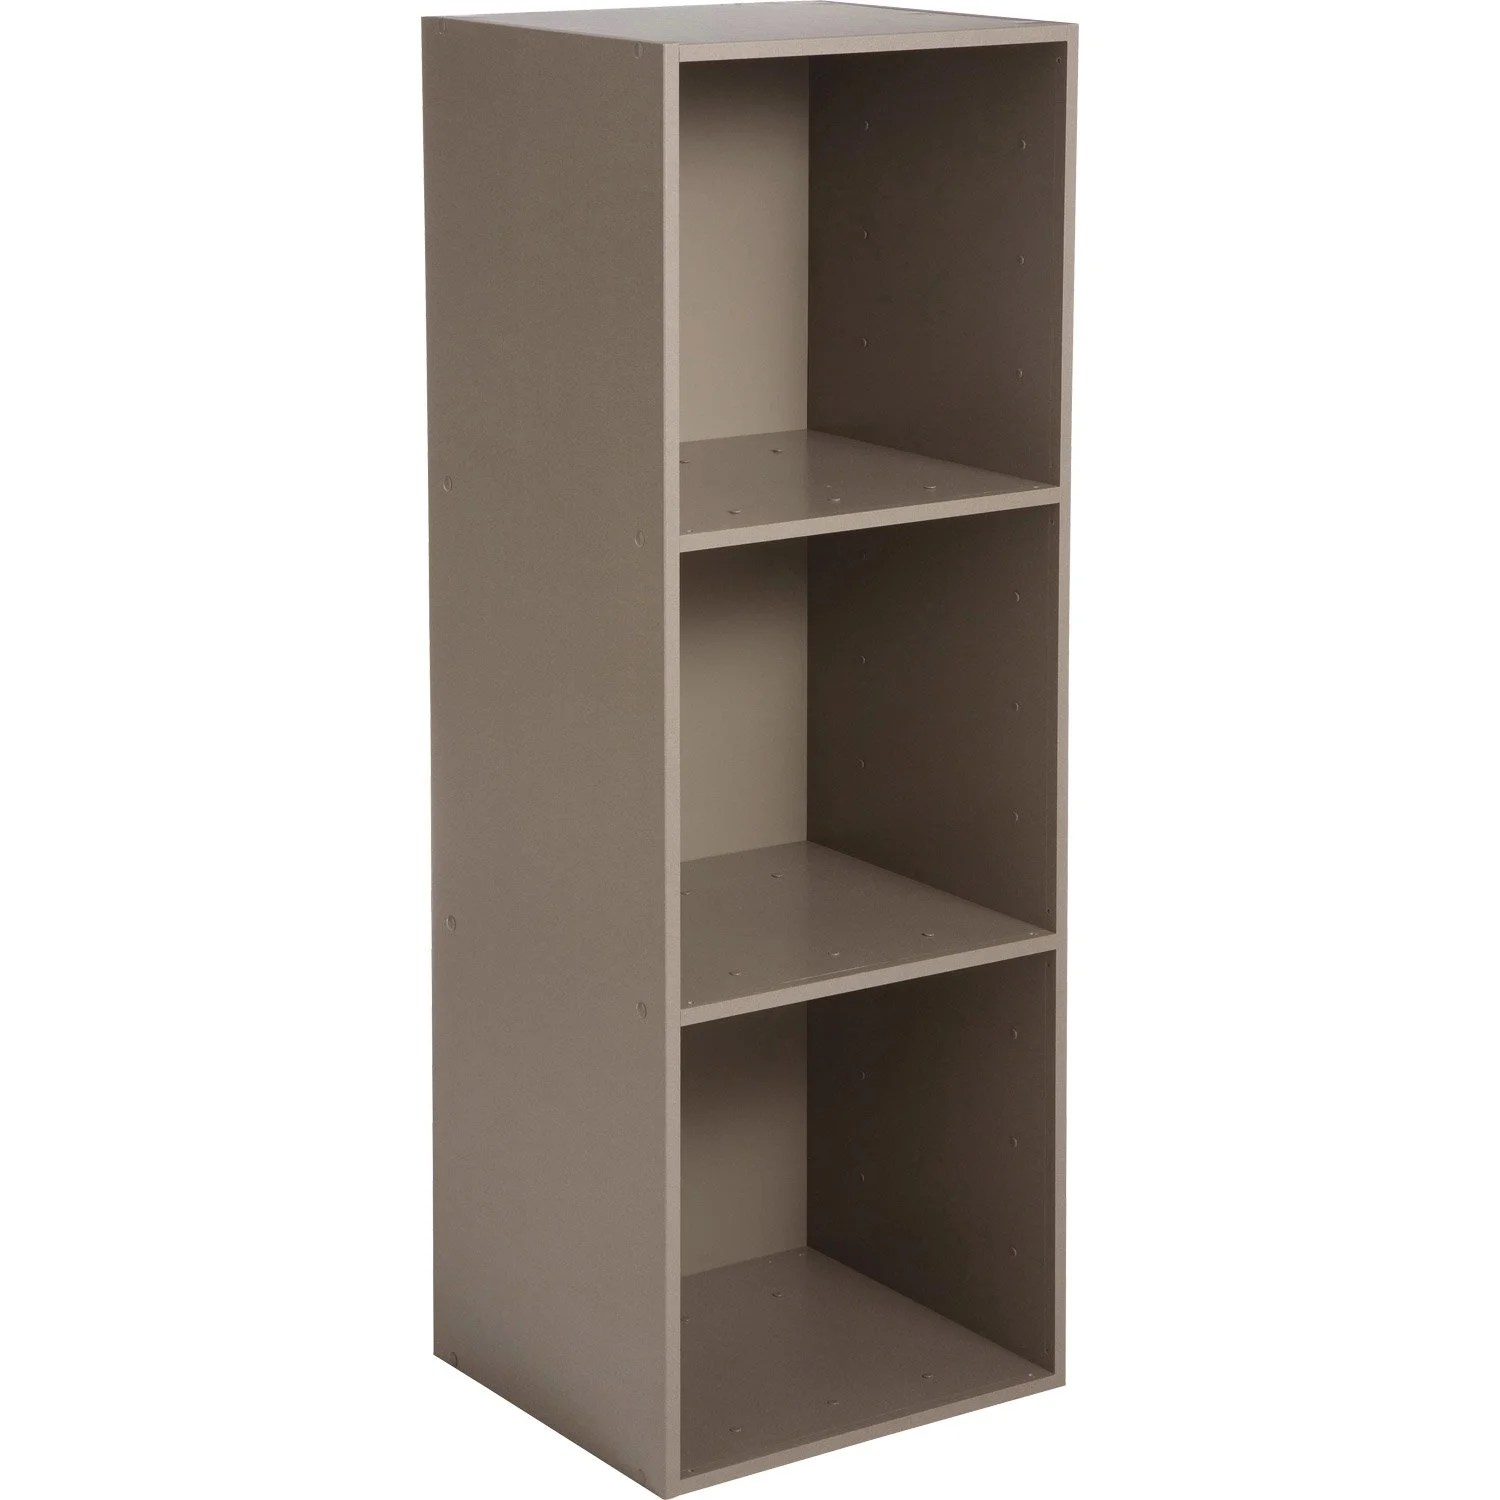 Meuble Multikaz Etagère 3 Cases Multikaz Taupe H 103 2 X L 35 2 X P 31 7